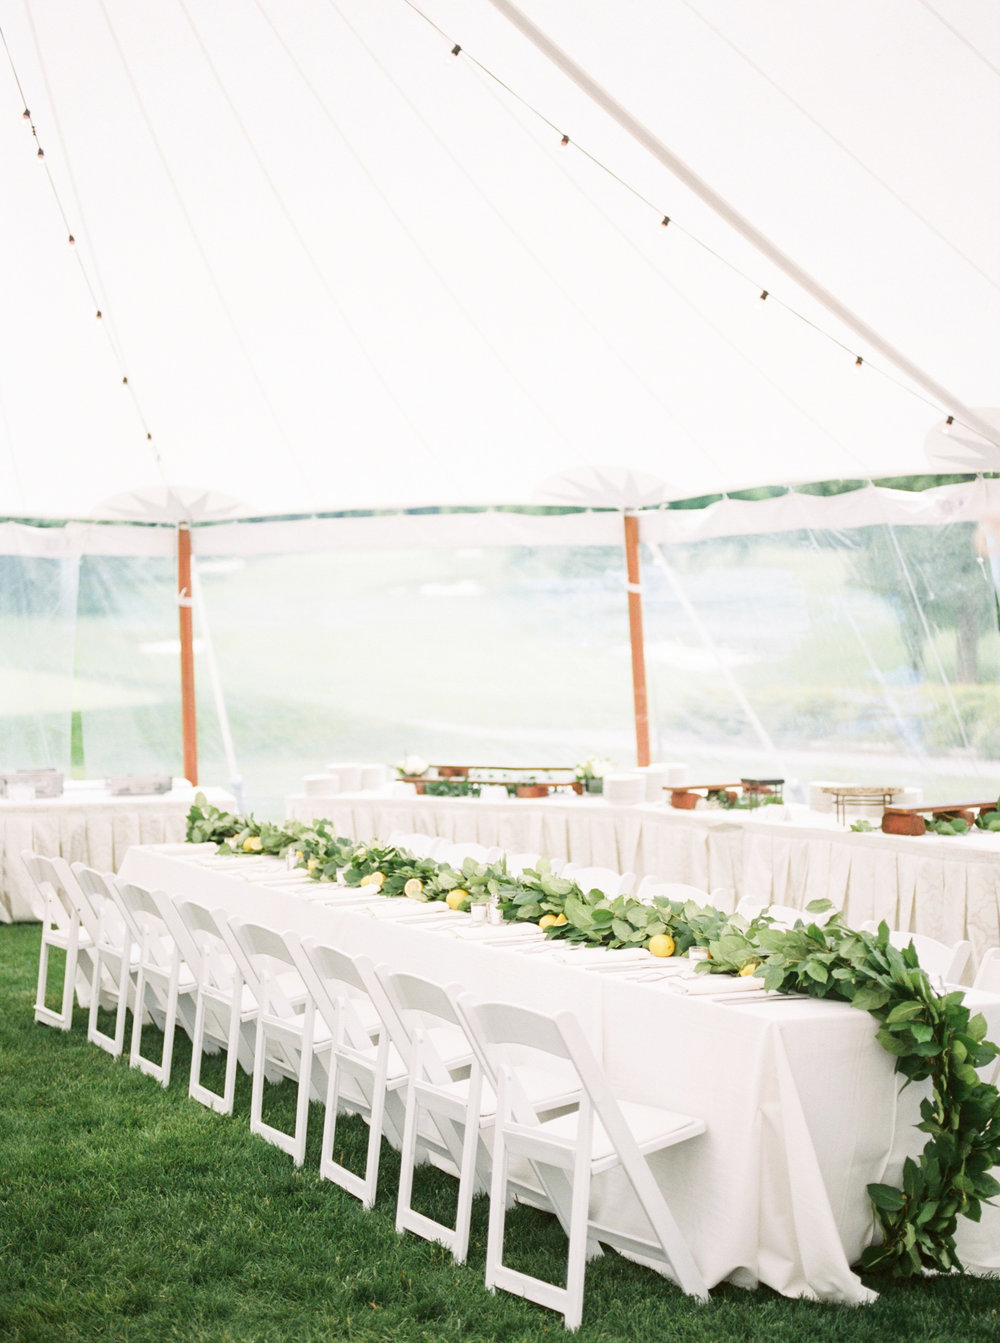 The bright white reception tent from Kerry and Bill's Italian themed wedding day at the Baltimore Country Club.